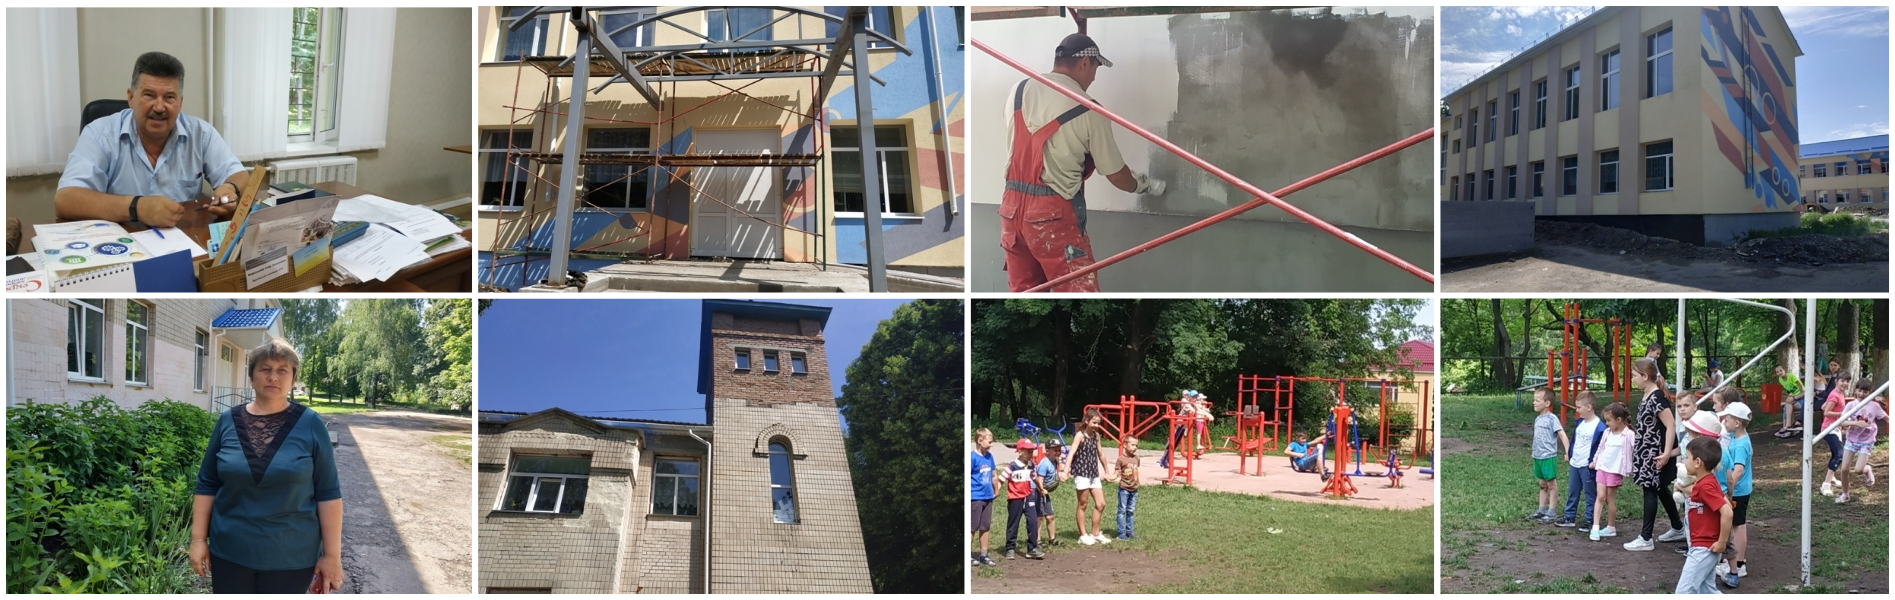 Educational complex of Orativska AH: energy efficient school, art centre, summer camp and open-air sports